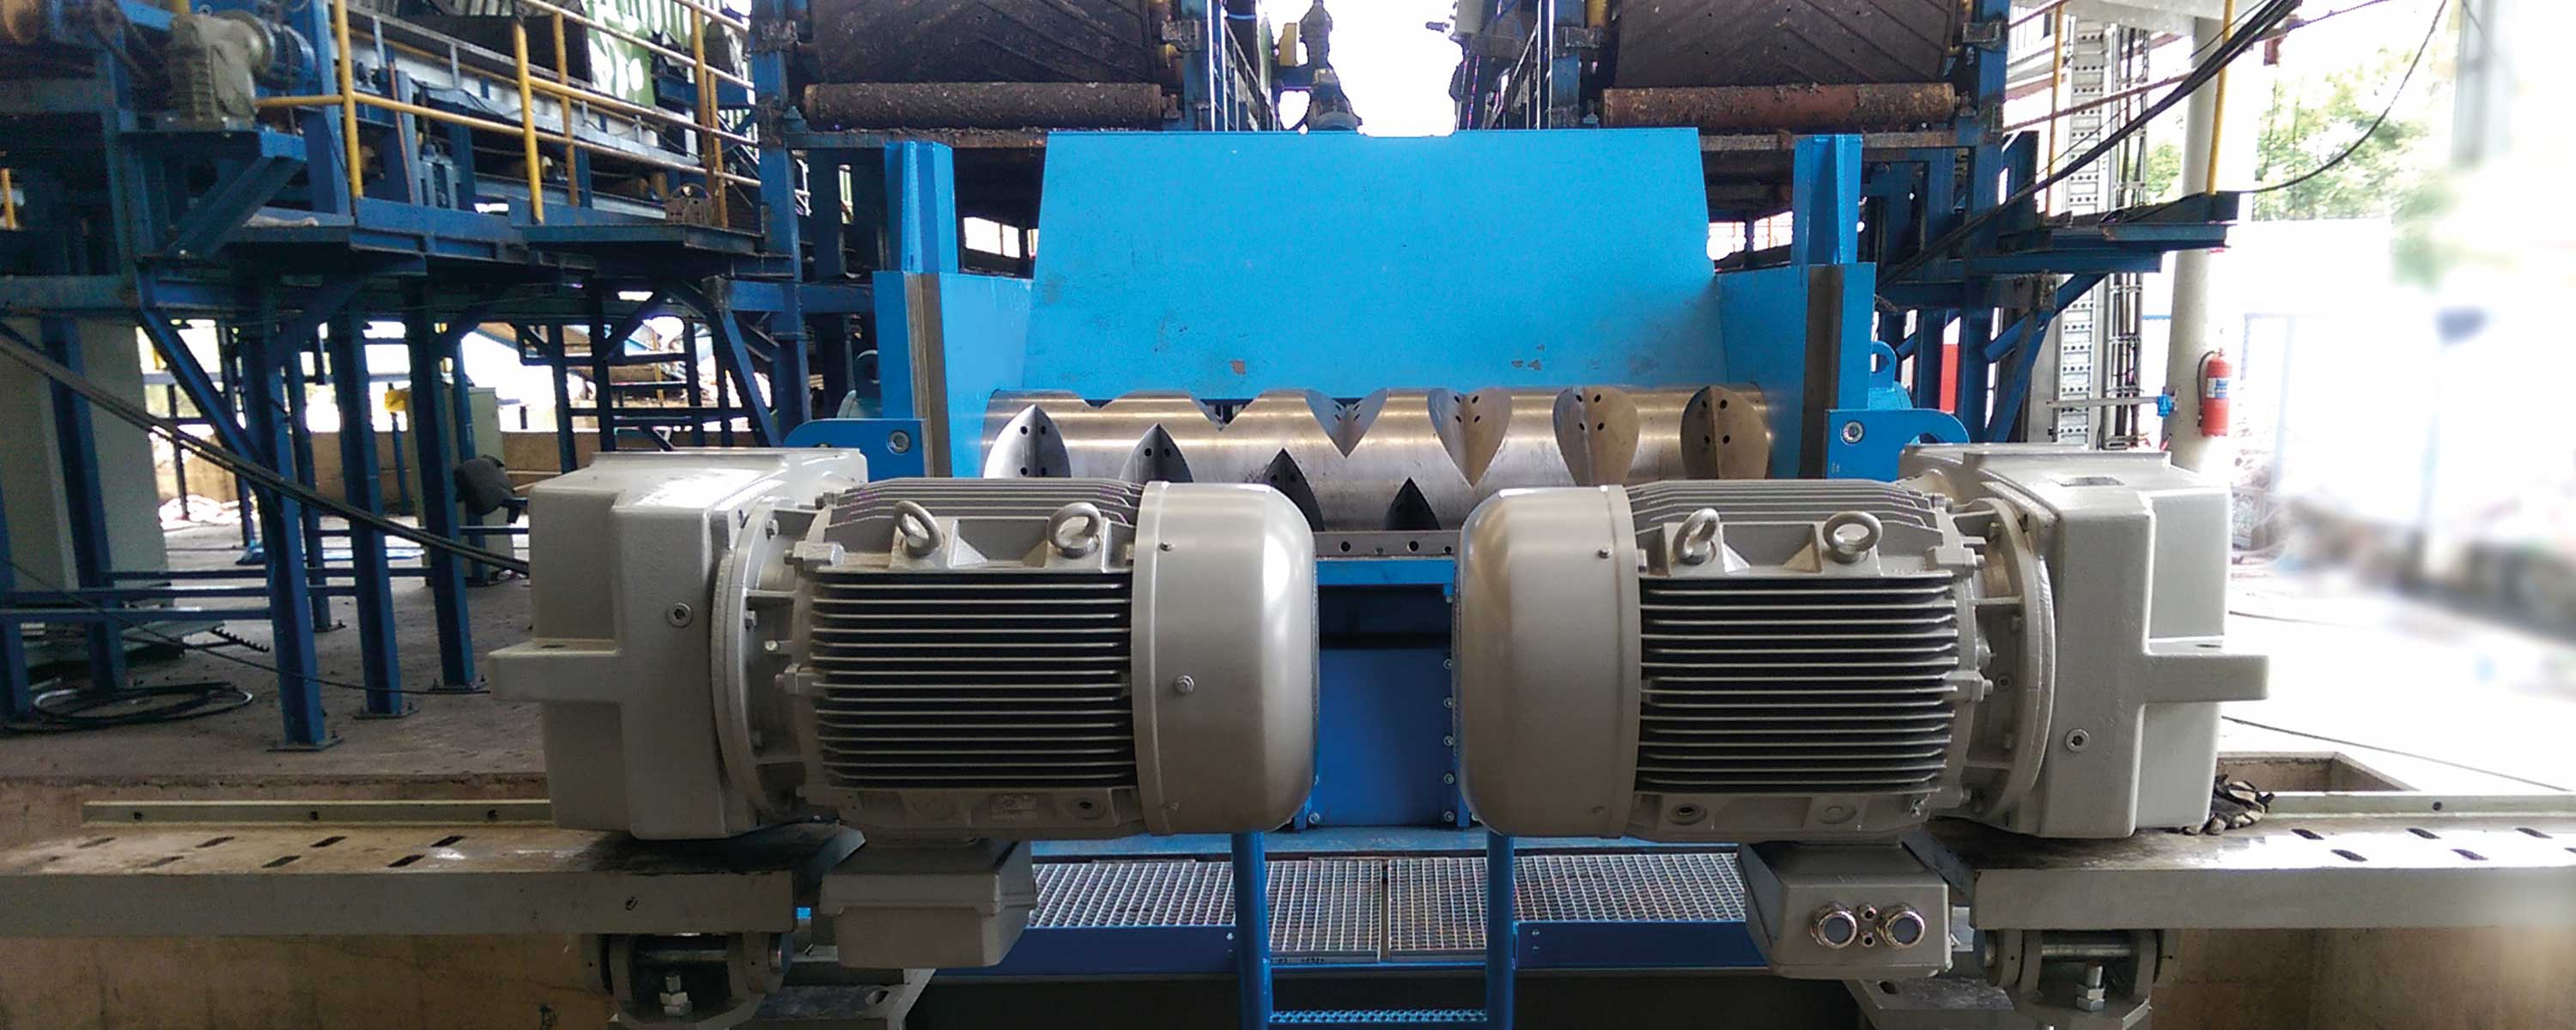 Gearboxes on recycling machinery